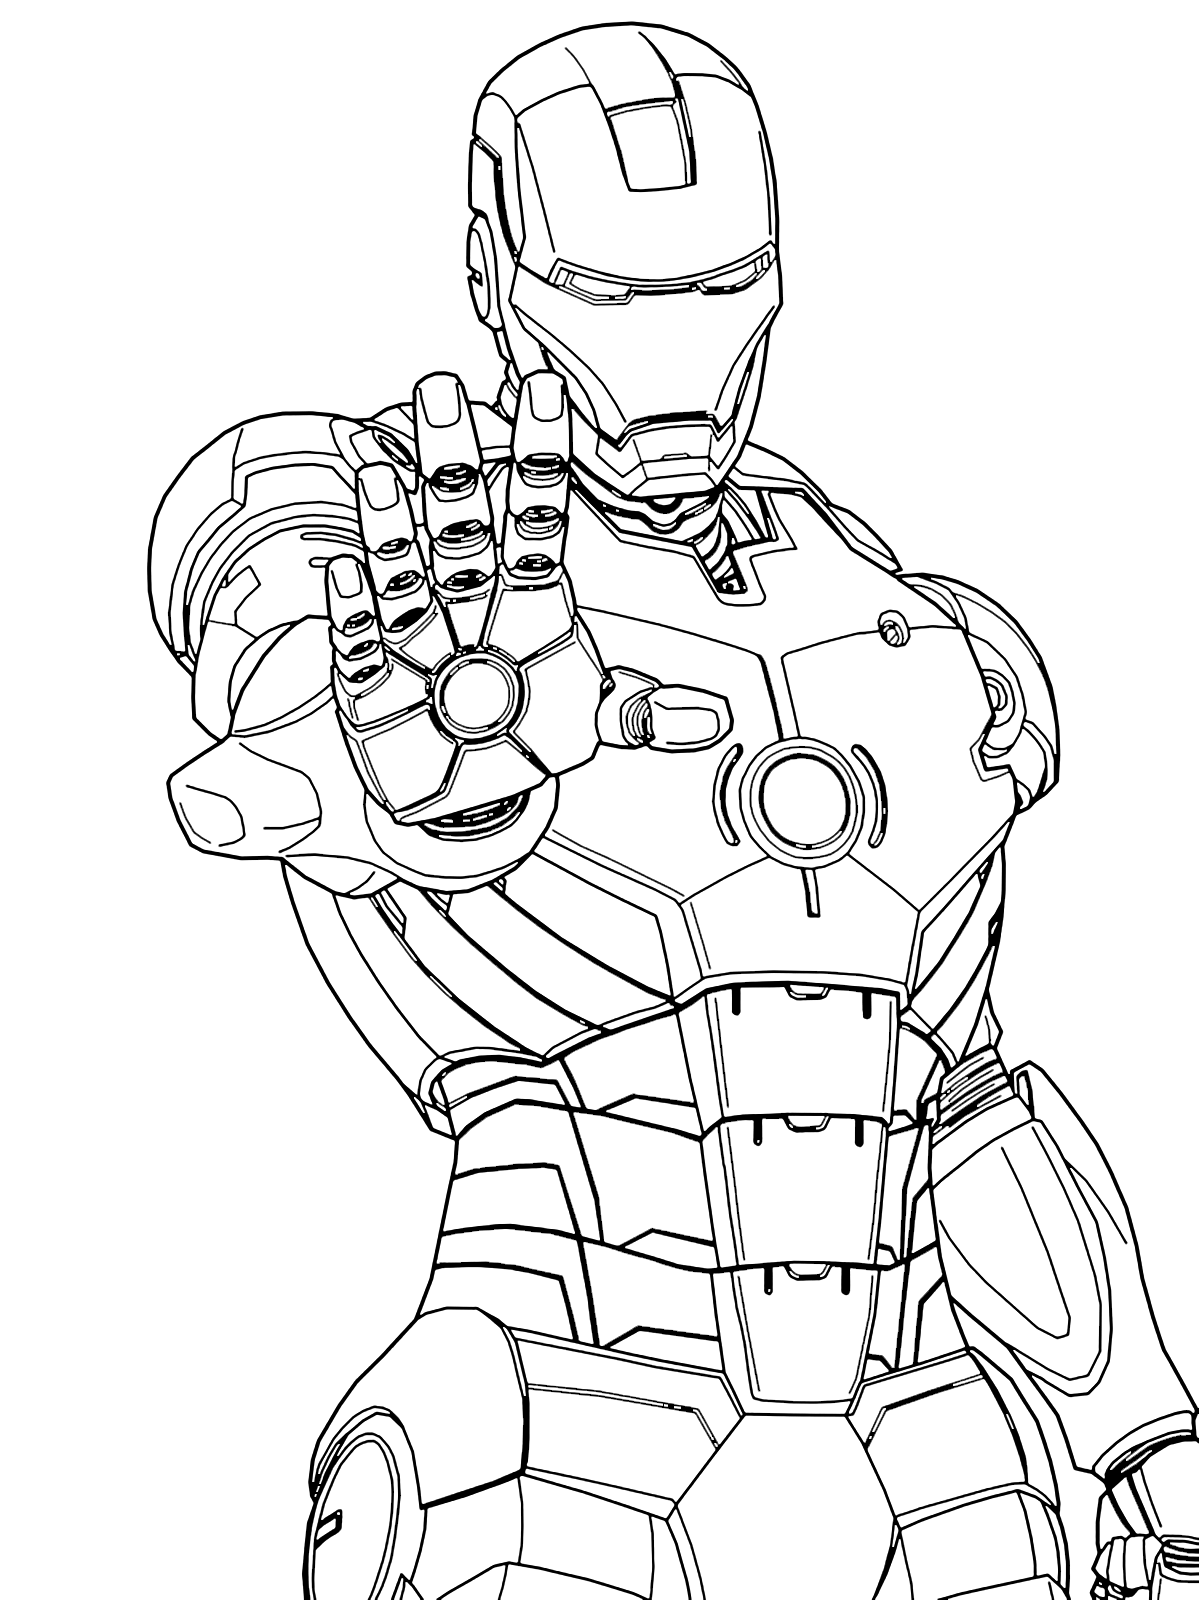 Iron man iron man ready to shoot with the palm of his hand for Disegni da colorare iron man